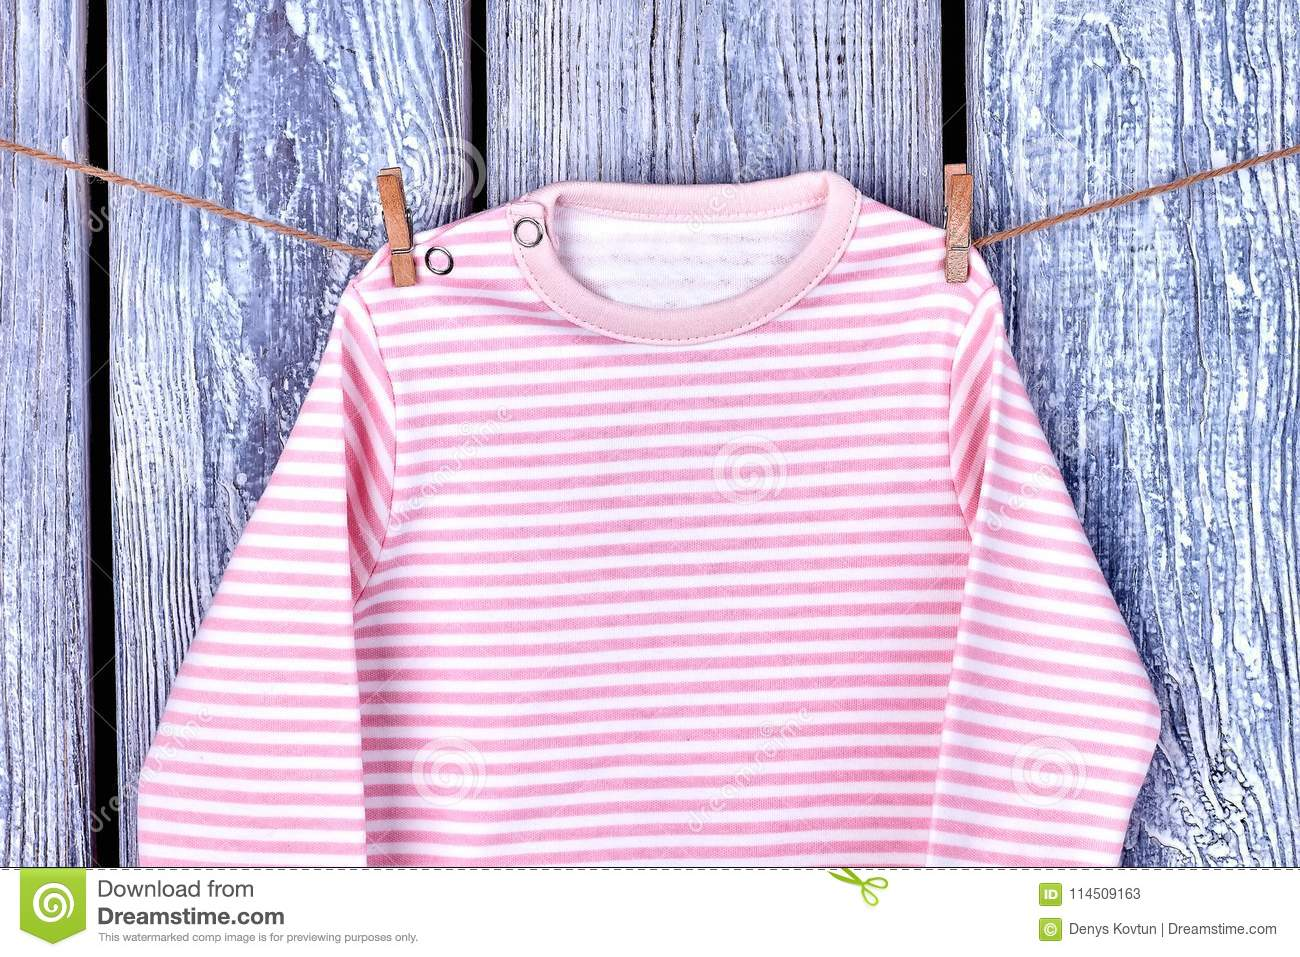 c48936339 Baby Clothes Hanging On Rope. Stock Image - Image of laundry ...